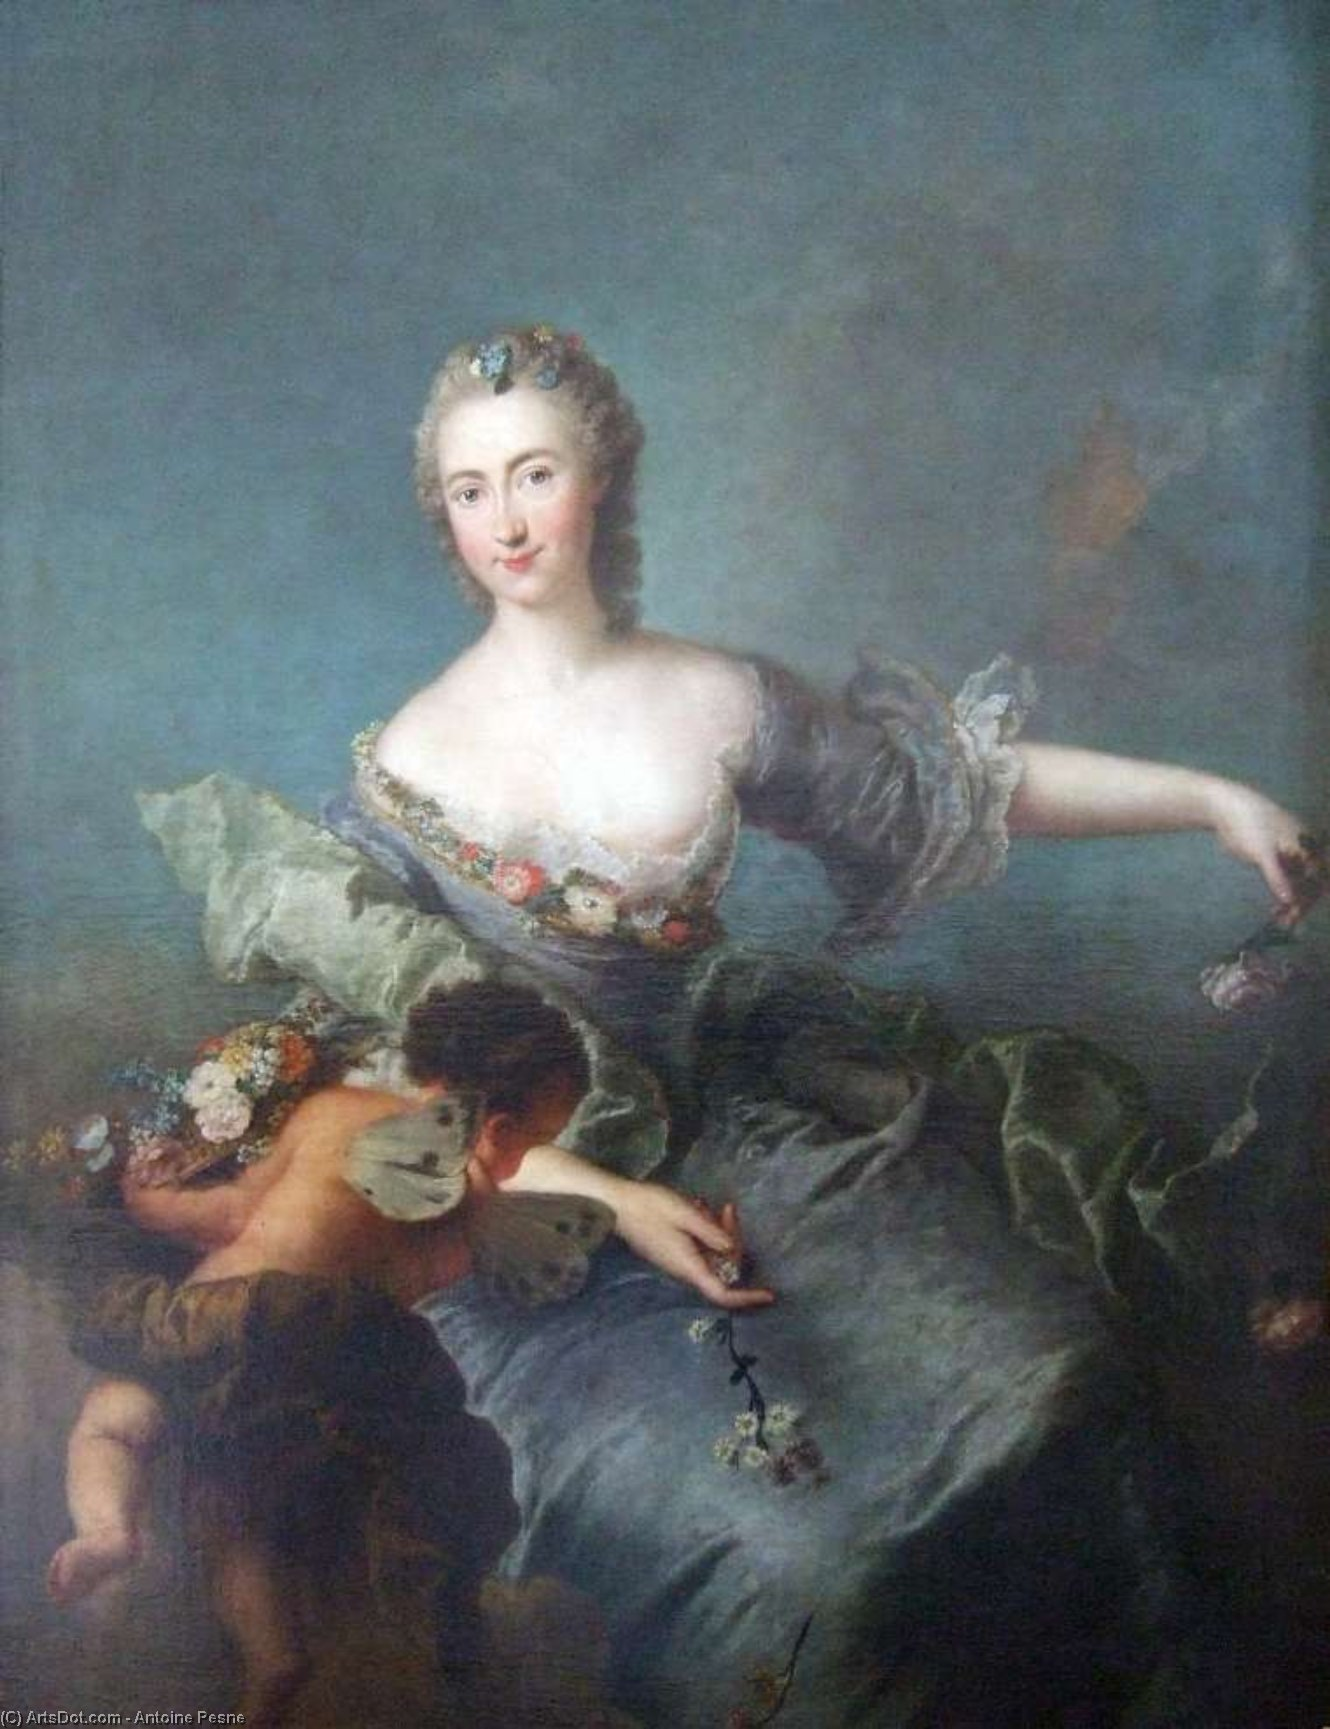 Wikioo.org - The Encyclopedia of Fine Arts - Painting, Artwork by Antoine Pesne - Portrait of Louise Albertine von Grappendorf as Flora